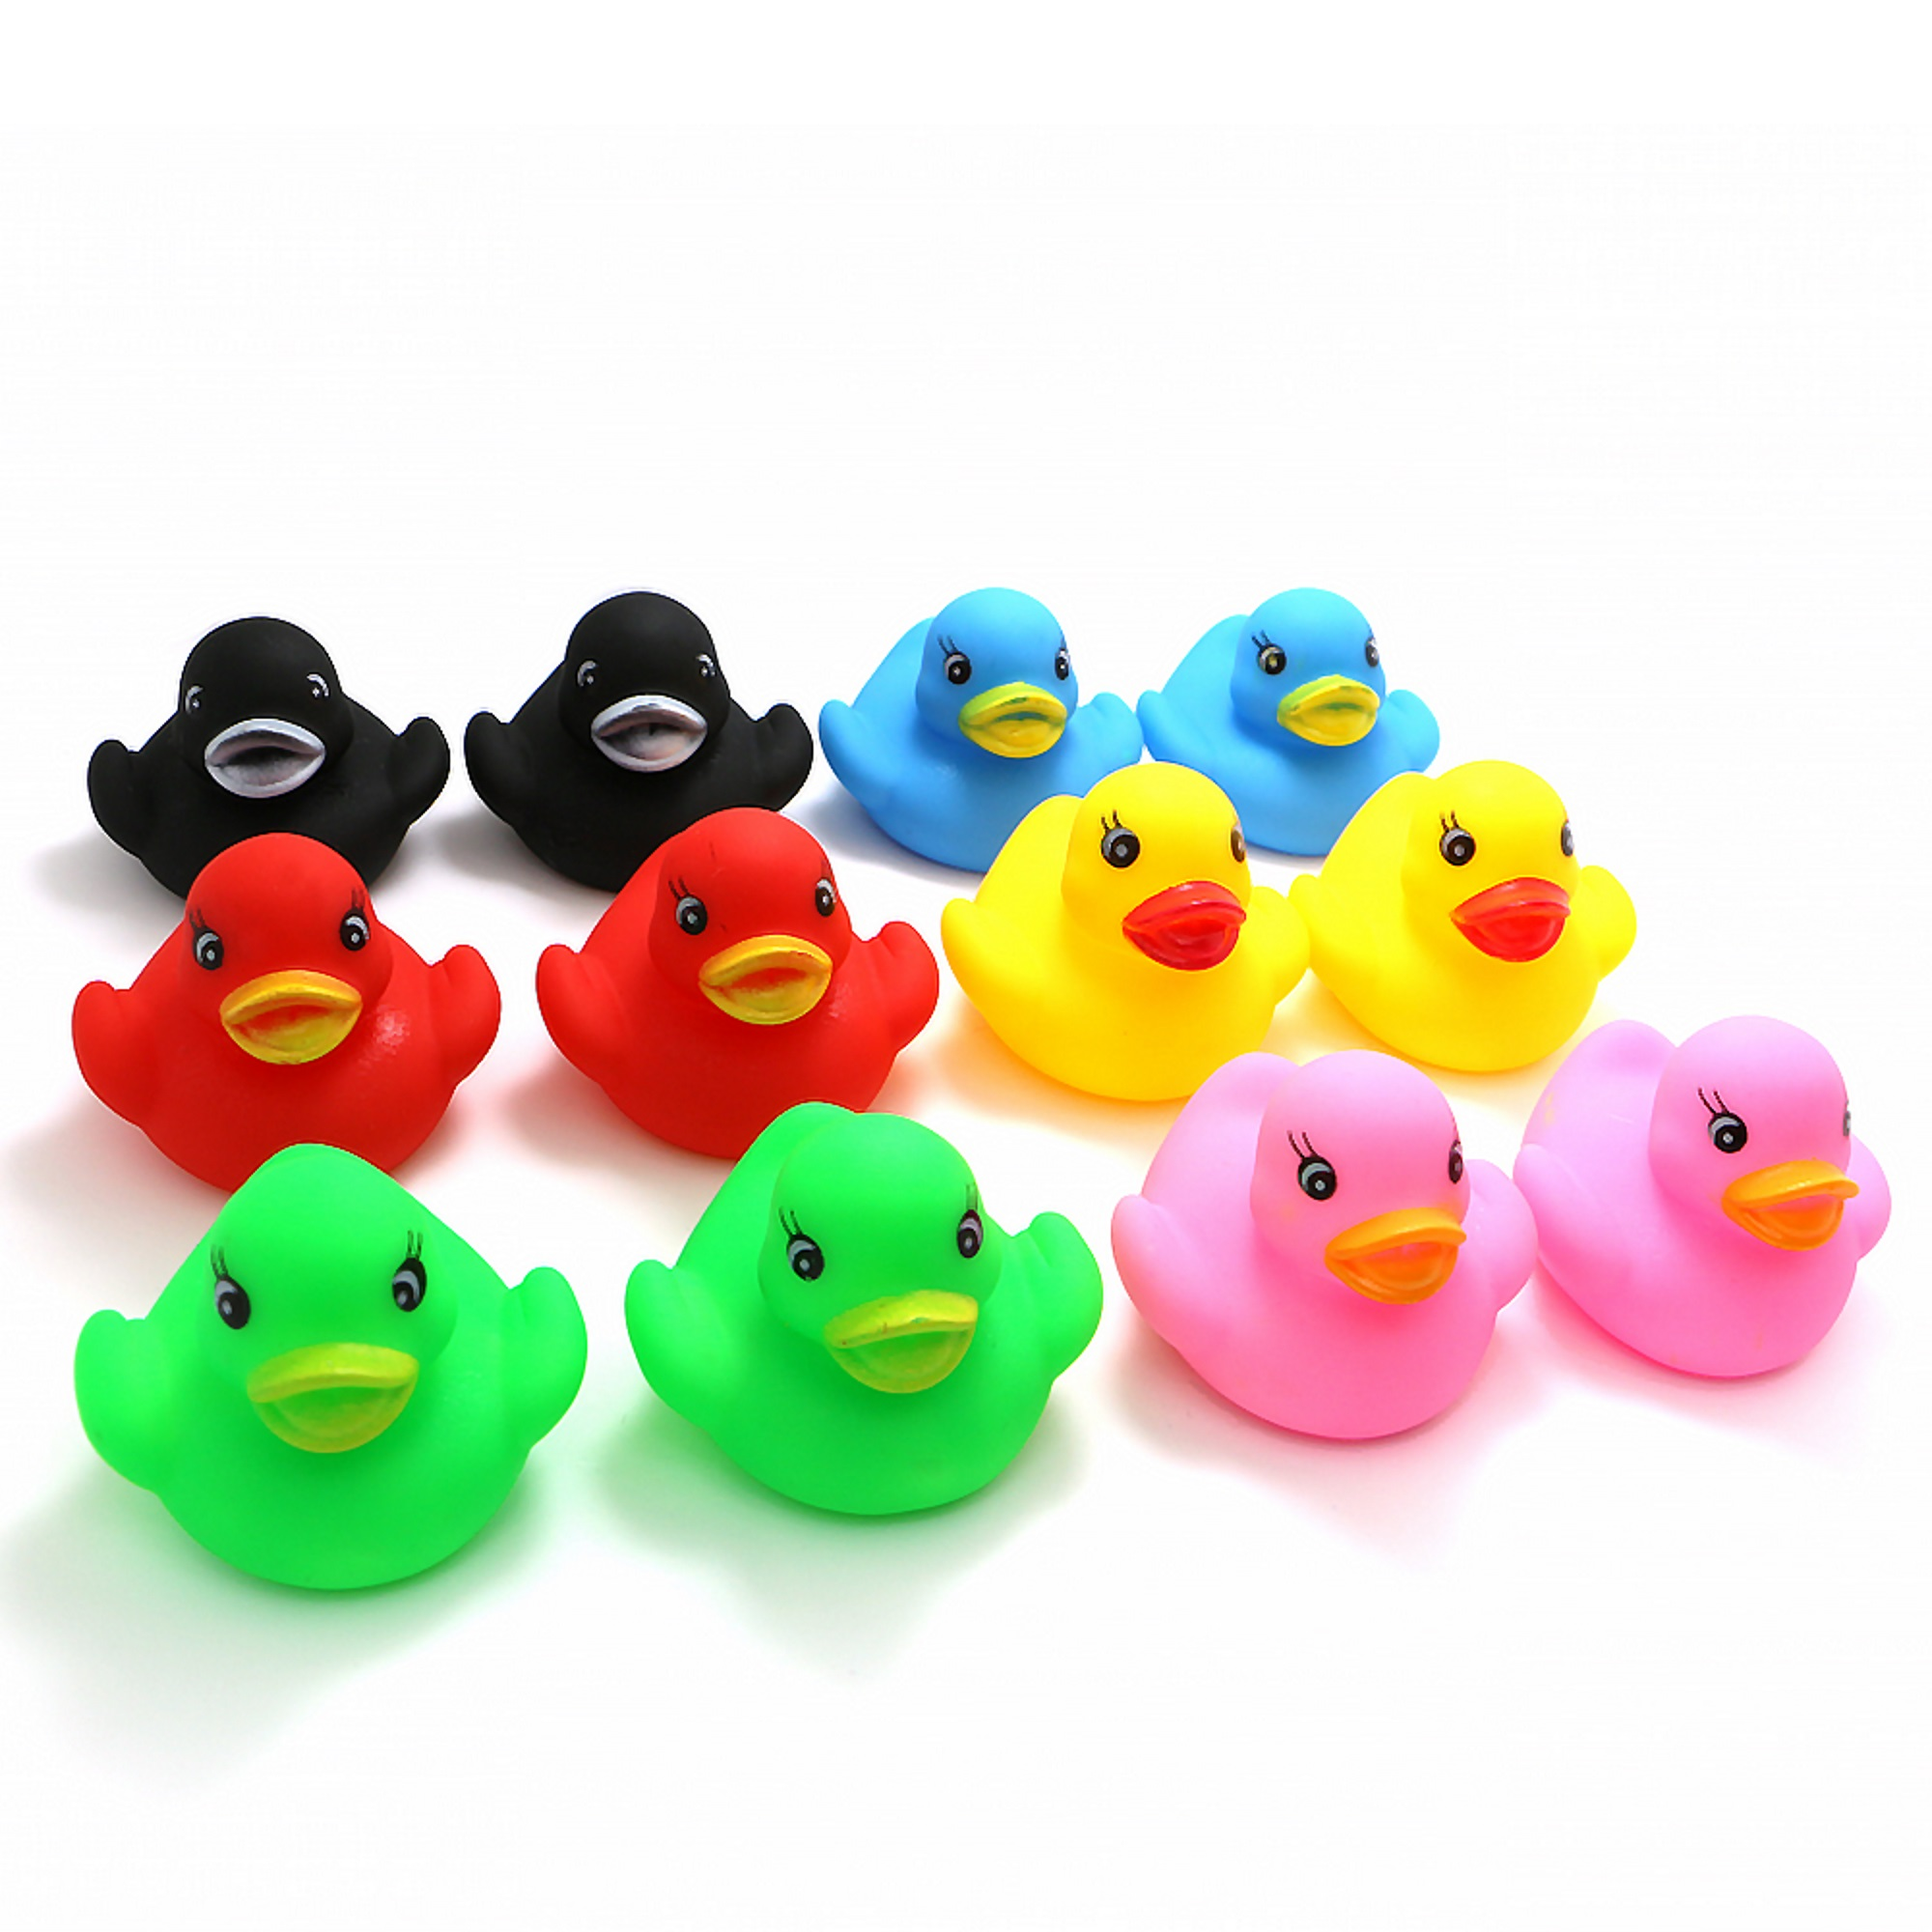 Novelty Place [Float & Squeak] Rubber Duck Ducky Baby Bath Toy for Kids Assorted Colors... by Novelty Place